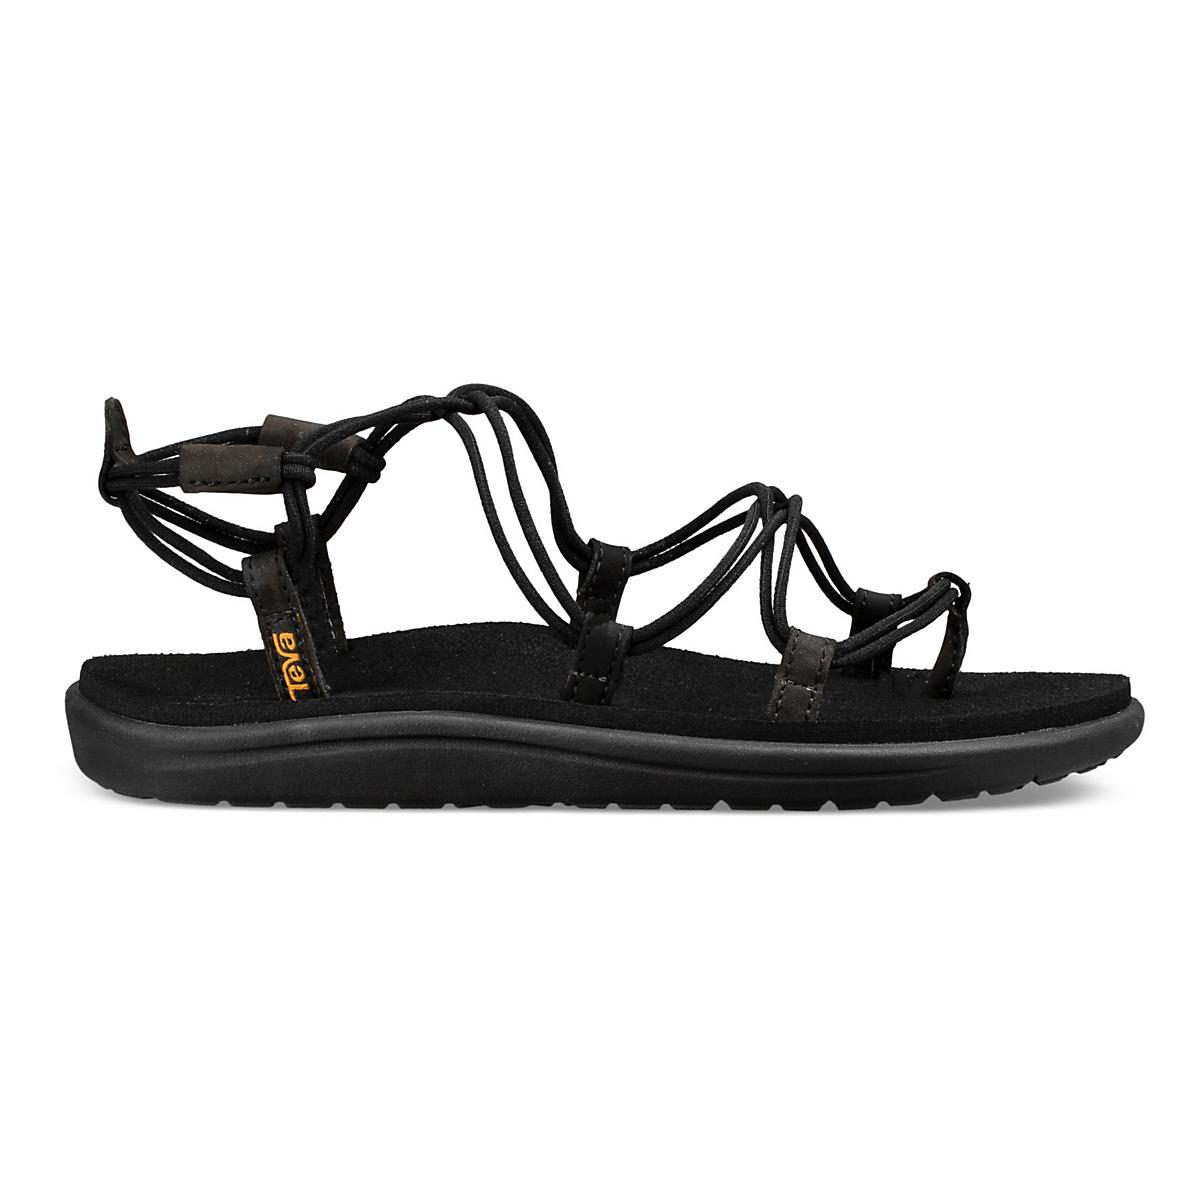 eab11d9aab58 Womens Teva Voya Infinity Sandals Shoe at Road Runner Sports